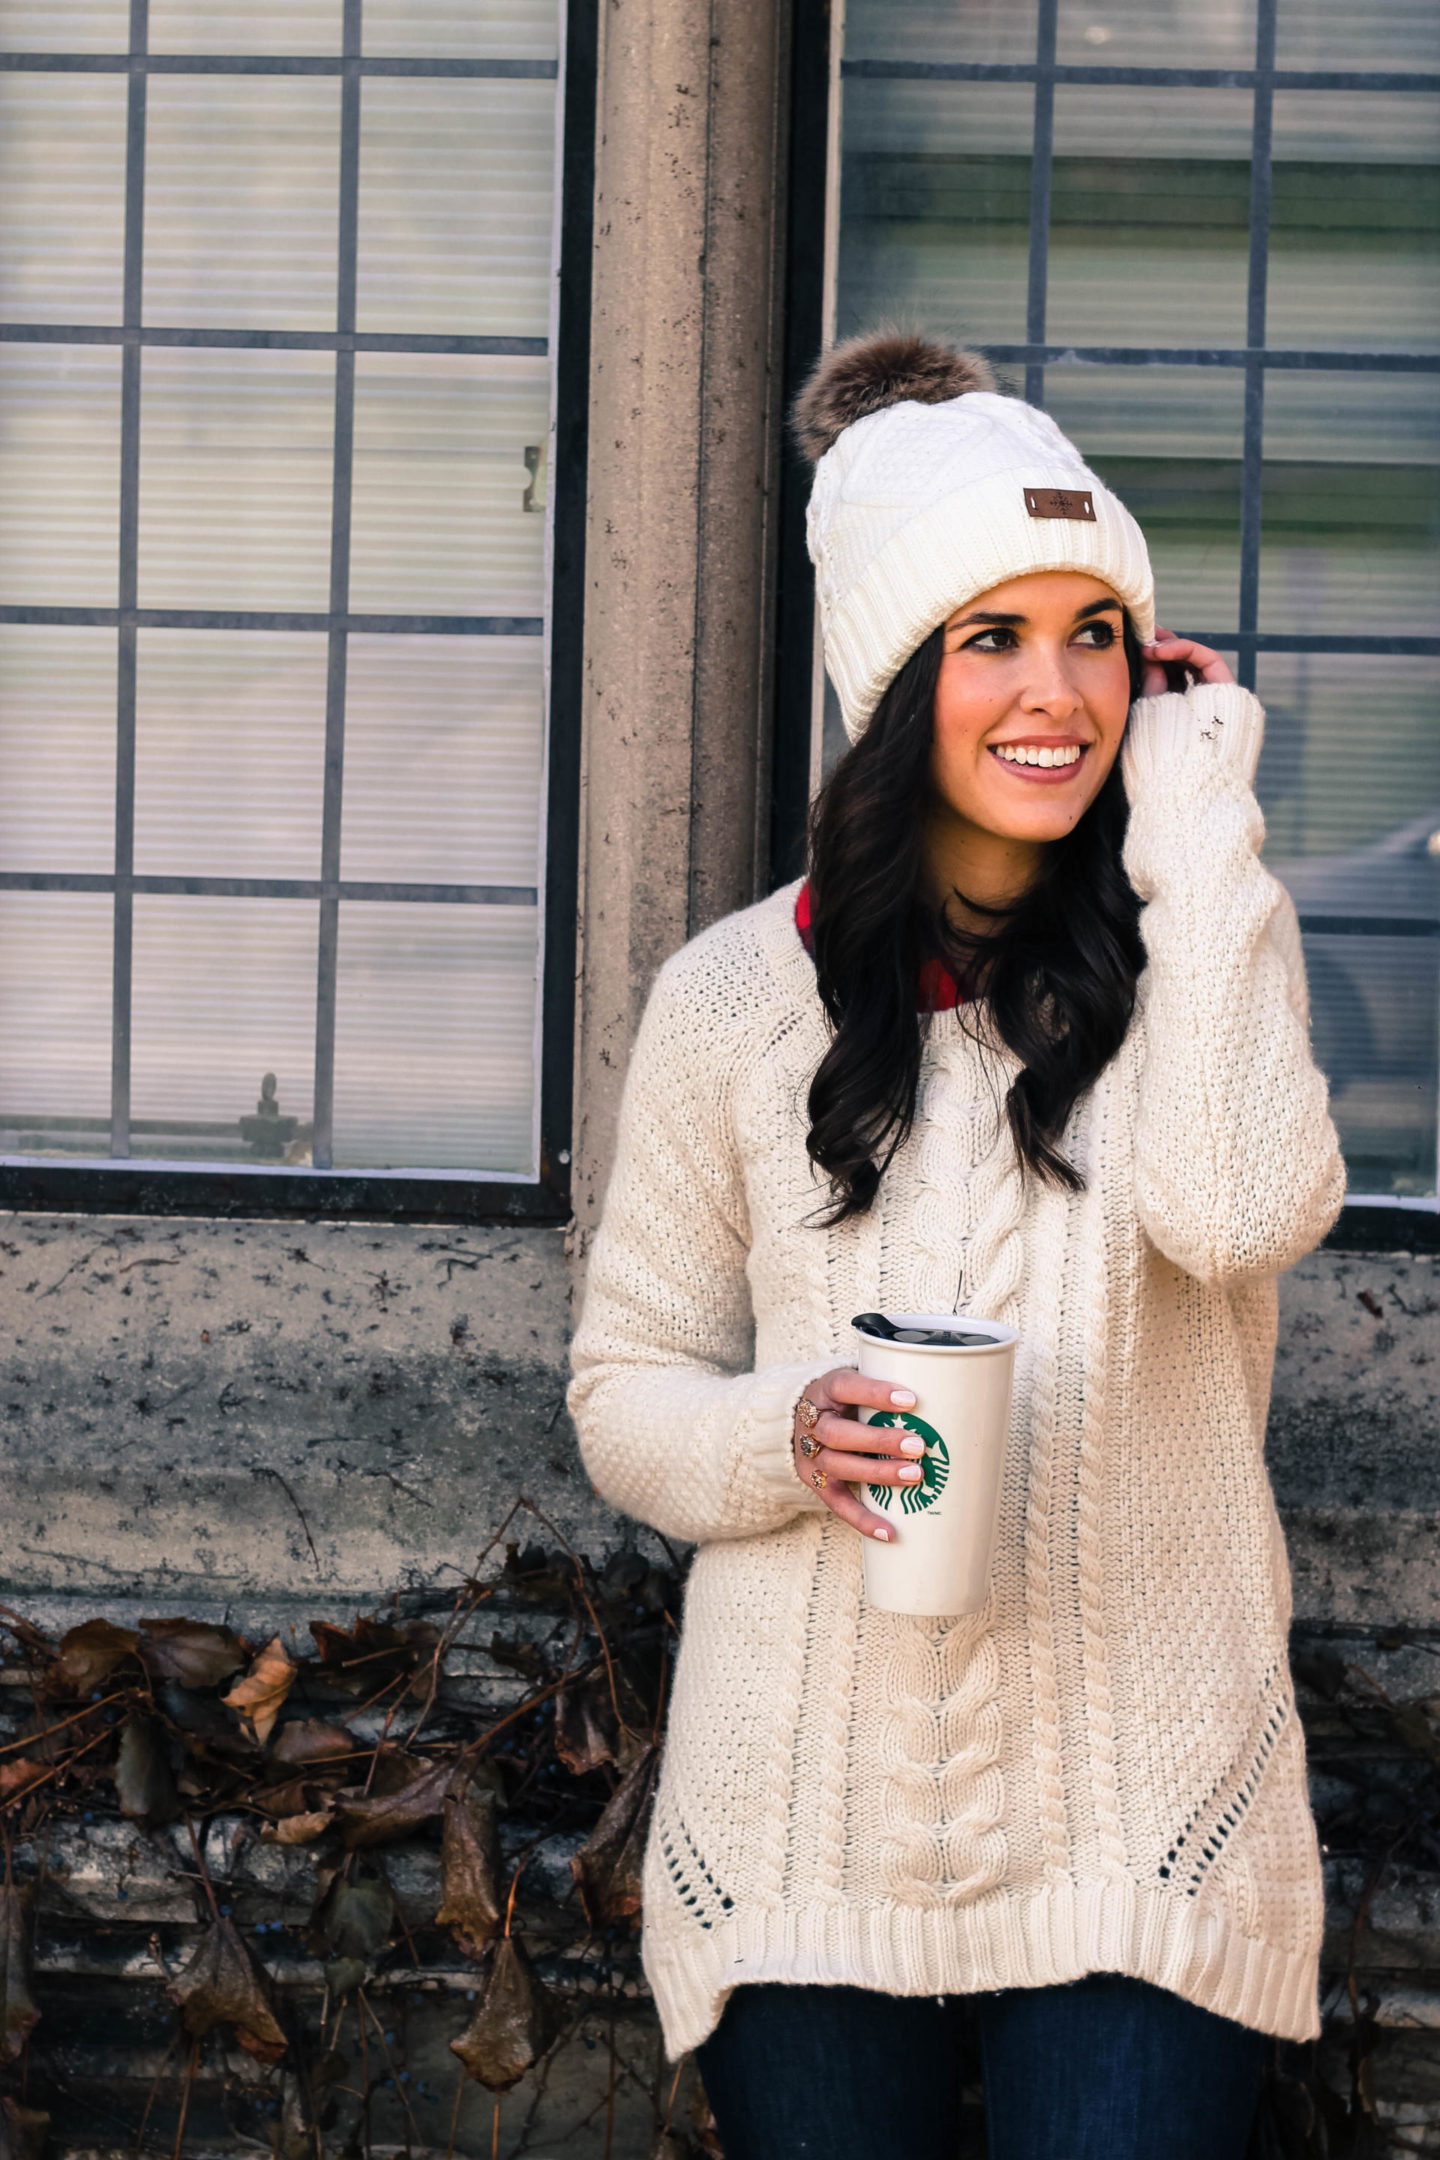 Classic Winter Fashion From A Southern Girl